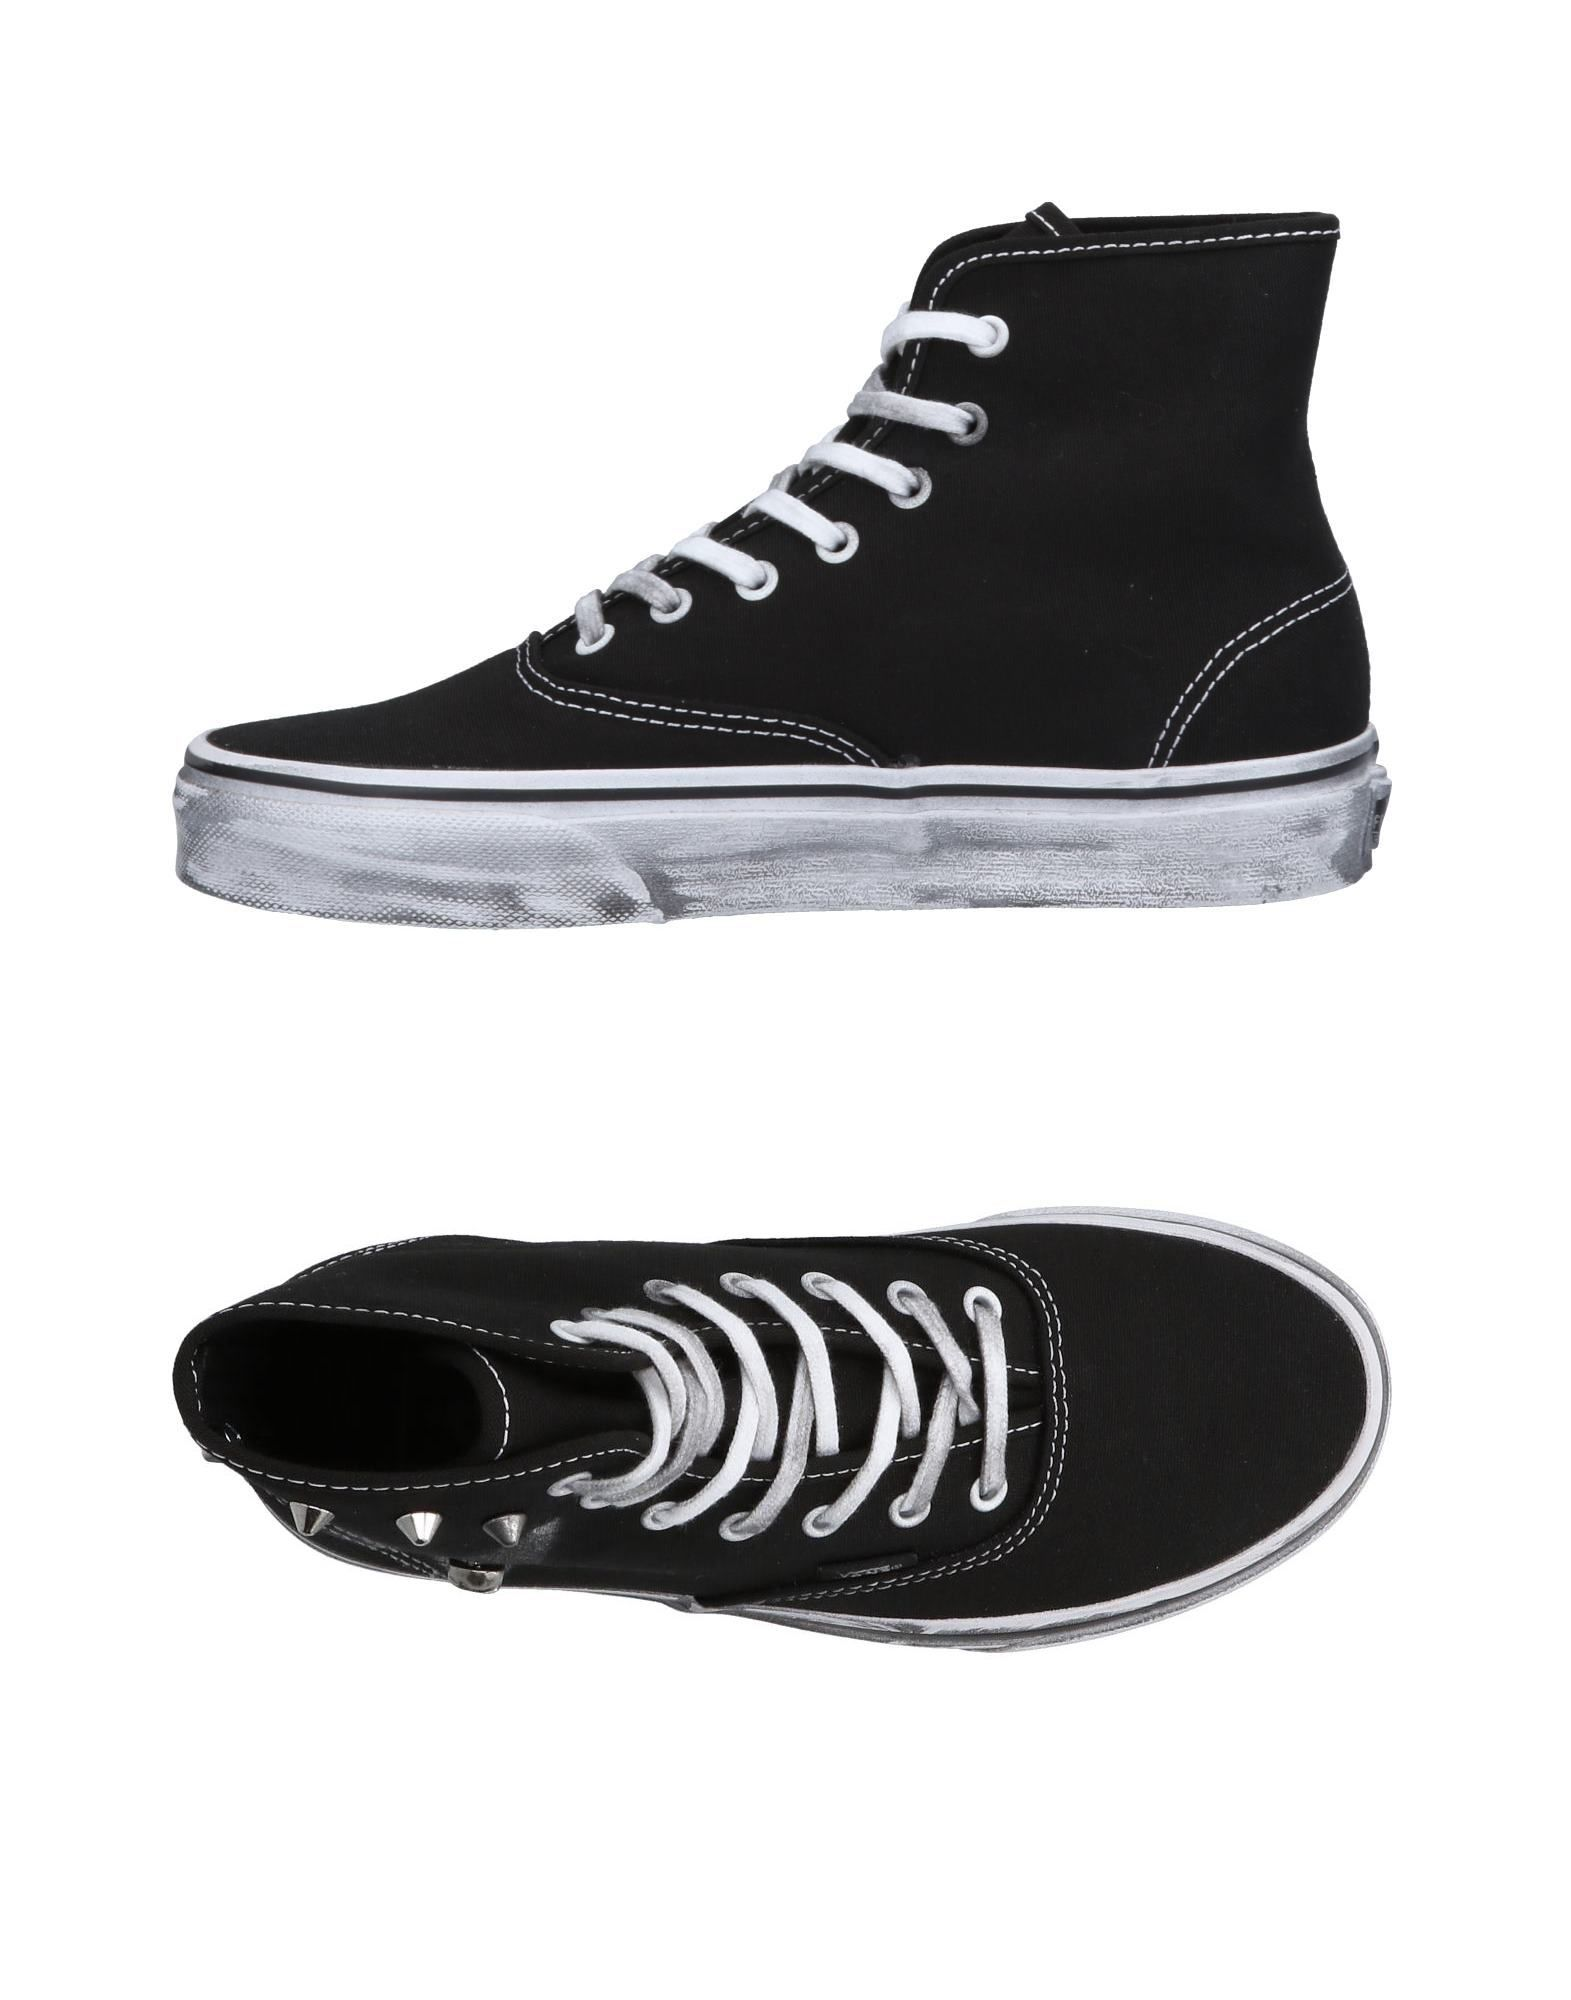 Vans Sneakers Damen  11498171WE   11498171WE 9a688f